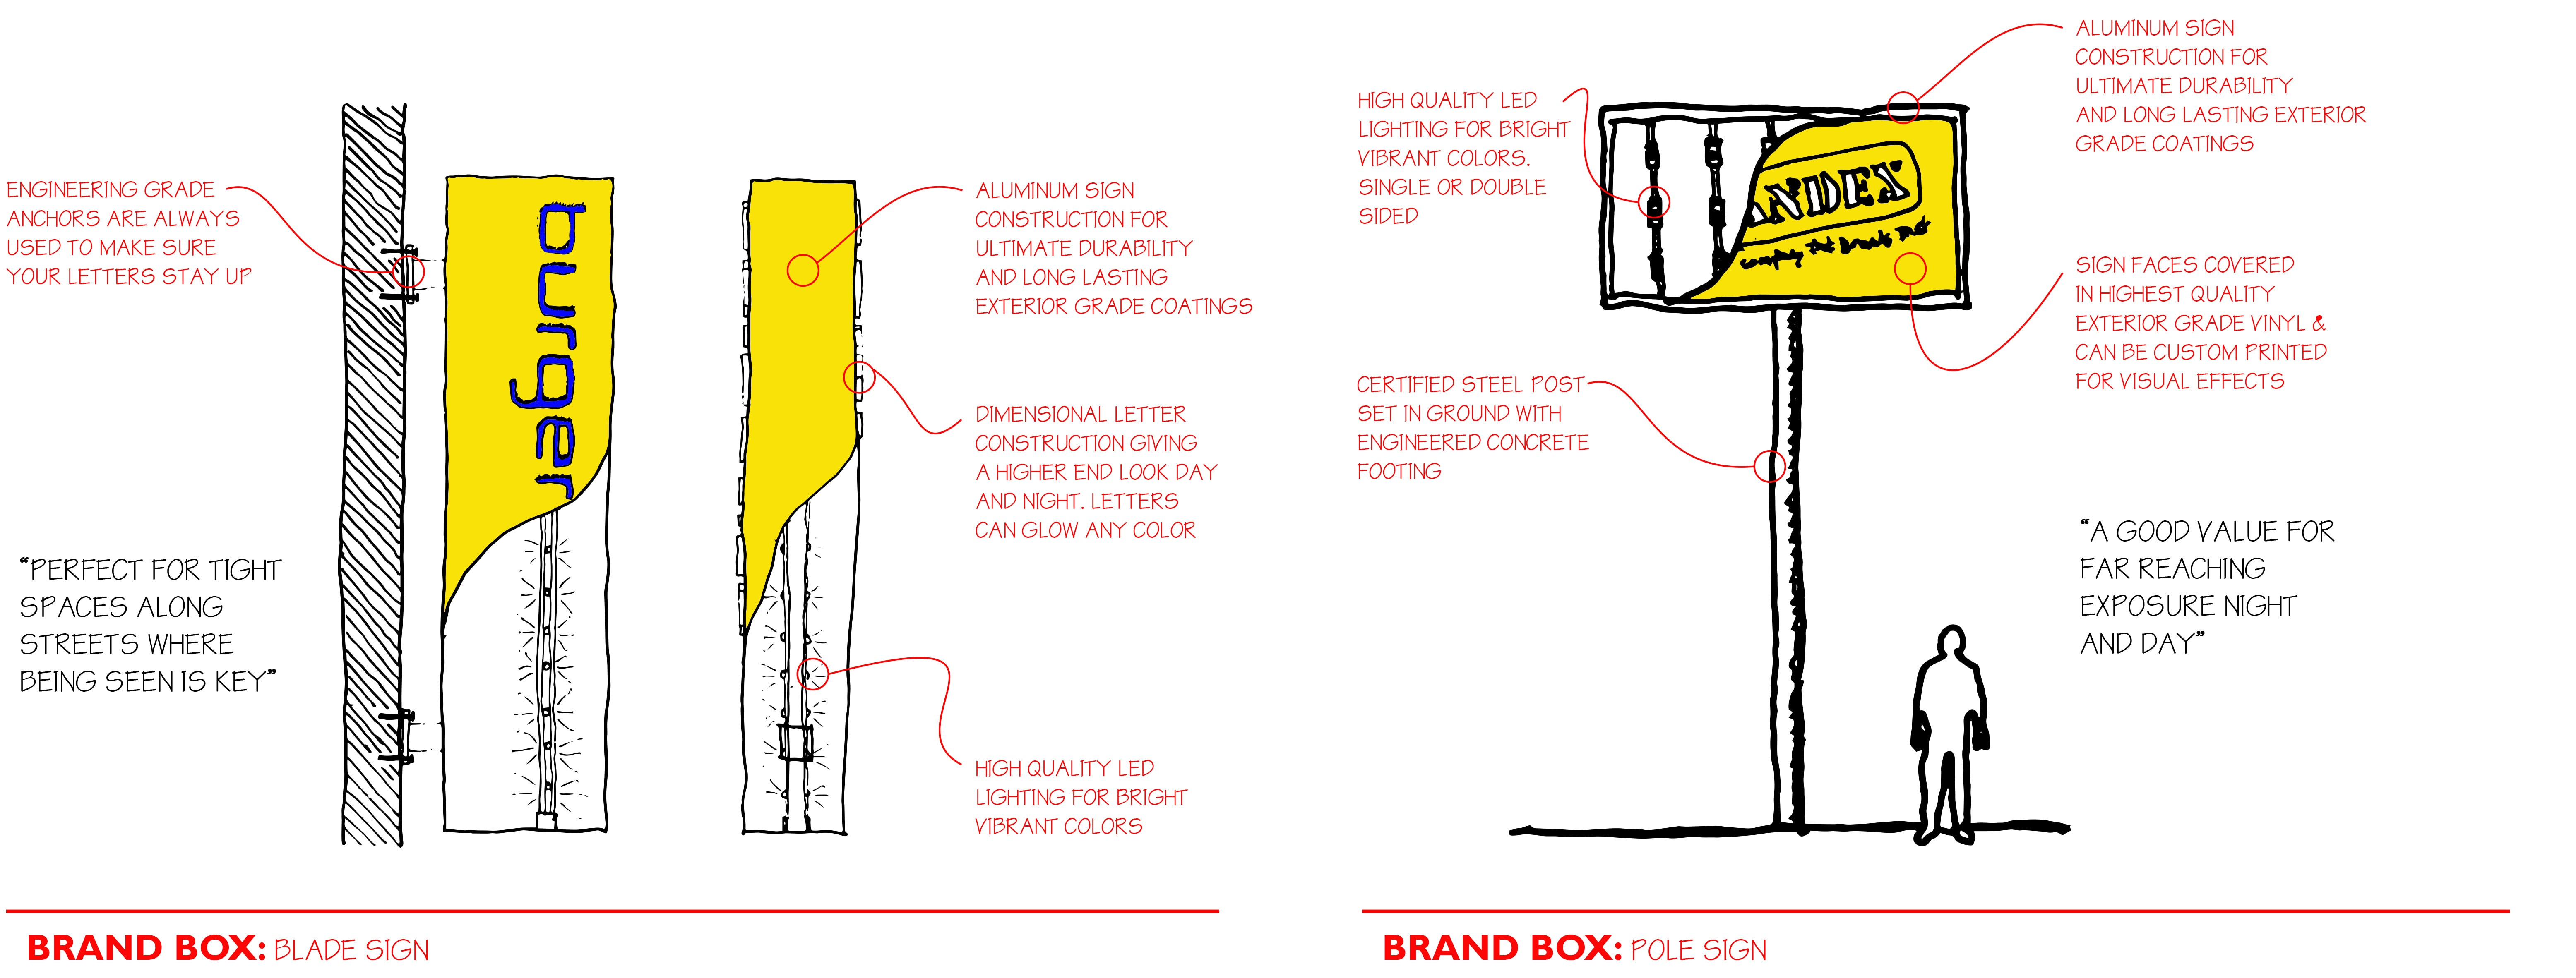 Powder Coat Oven Wiring Diagram Trusted Diagrams New Construction Letter Sign Schematics U2022 Spray Booth